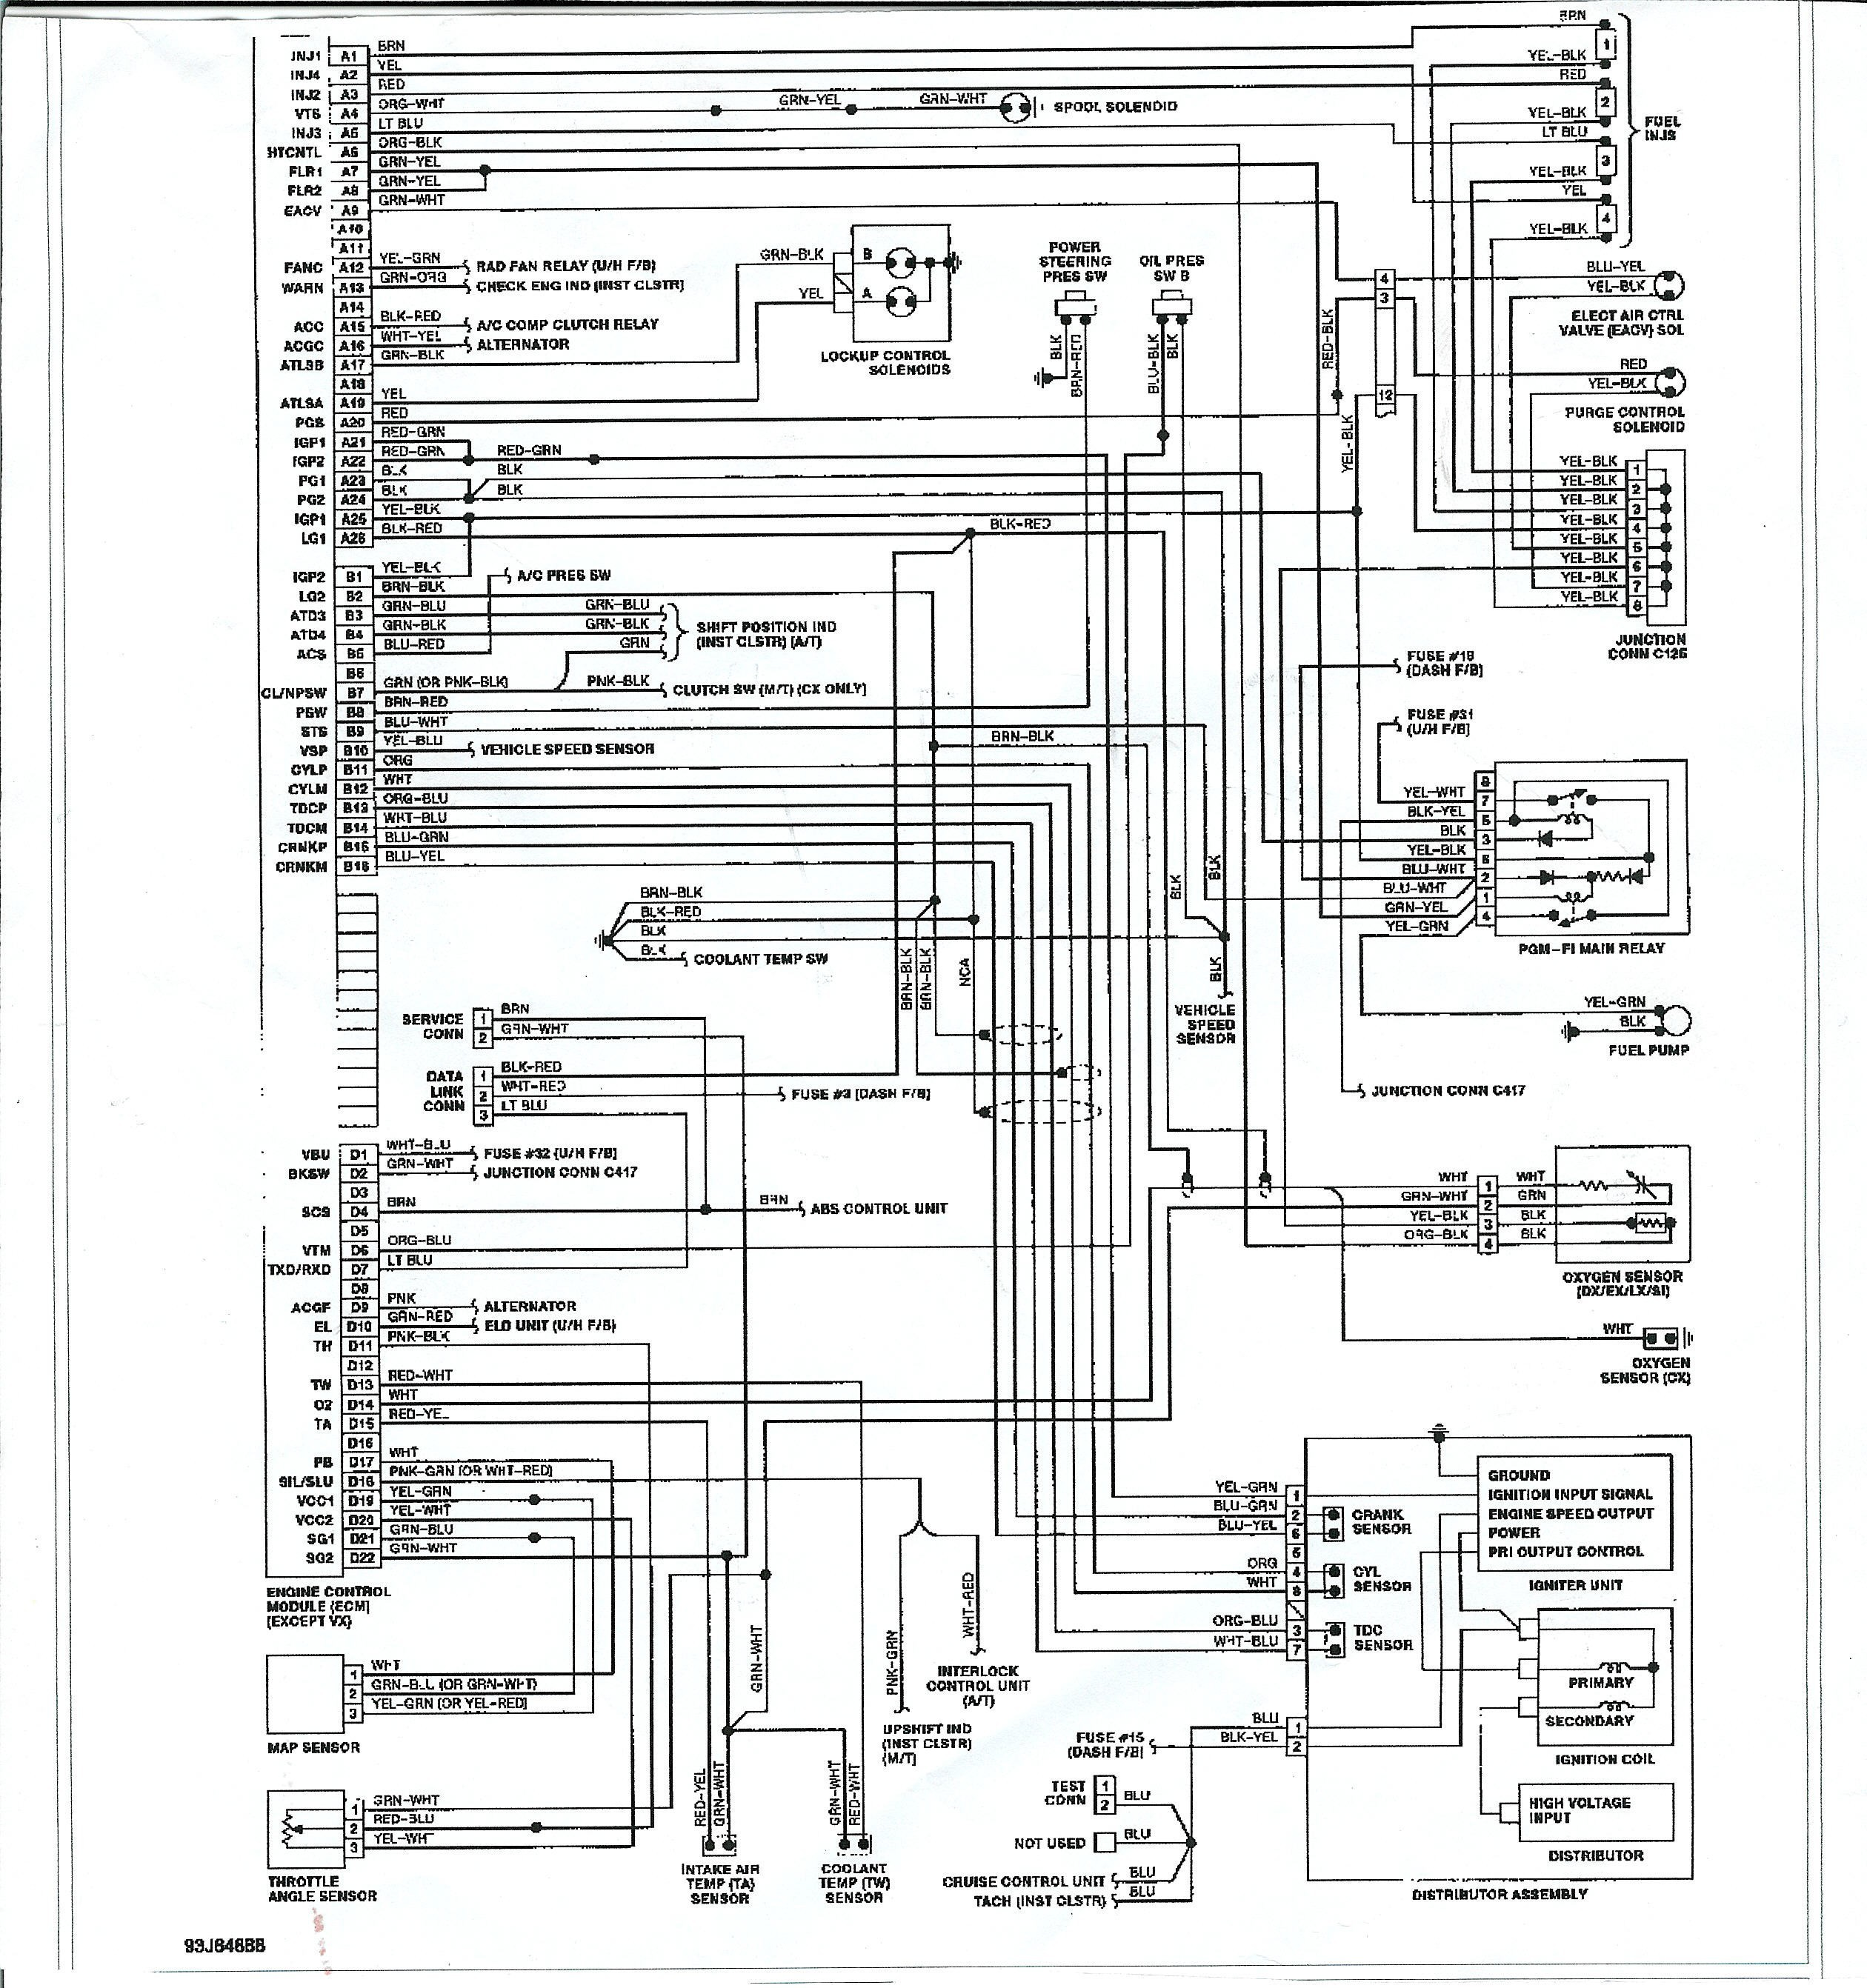 DIAGRAM] Honda Accord 1996 Wiring Diagram Stereo FULL Version HD Quality  Diagram Stereo - ENERGYWIRESPDF.LECOCHONDOR.FRWiring And Fuse Database